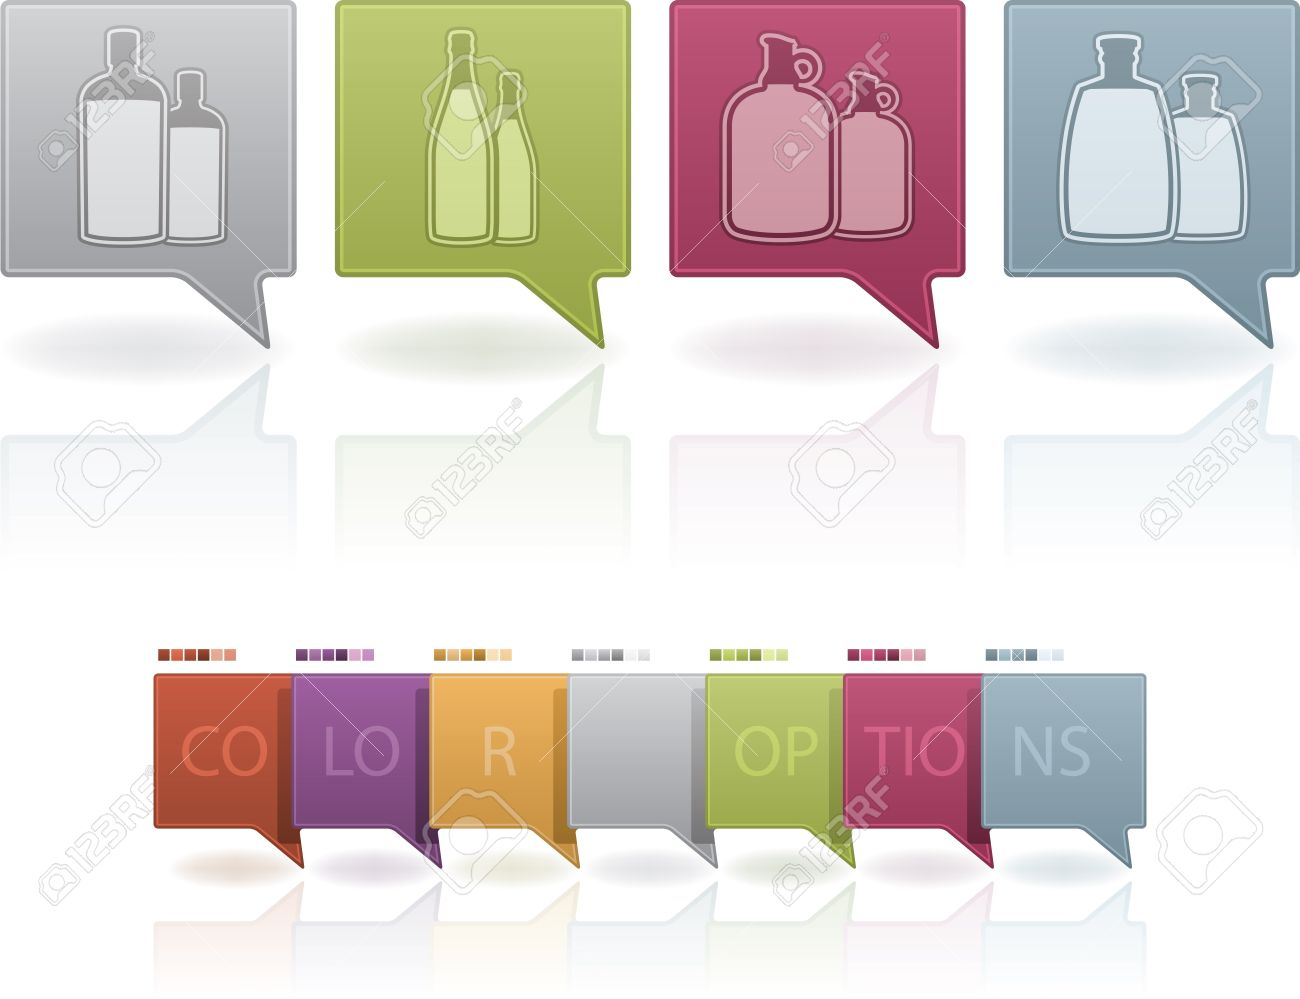 A Range Of Alcohol Glasses Icons From Left To Right: Bourbon.